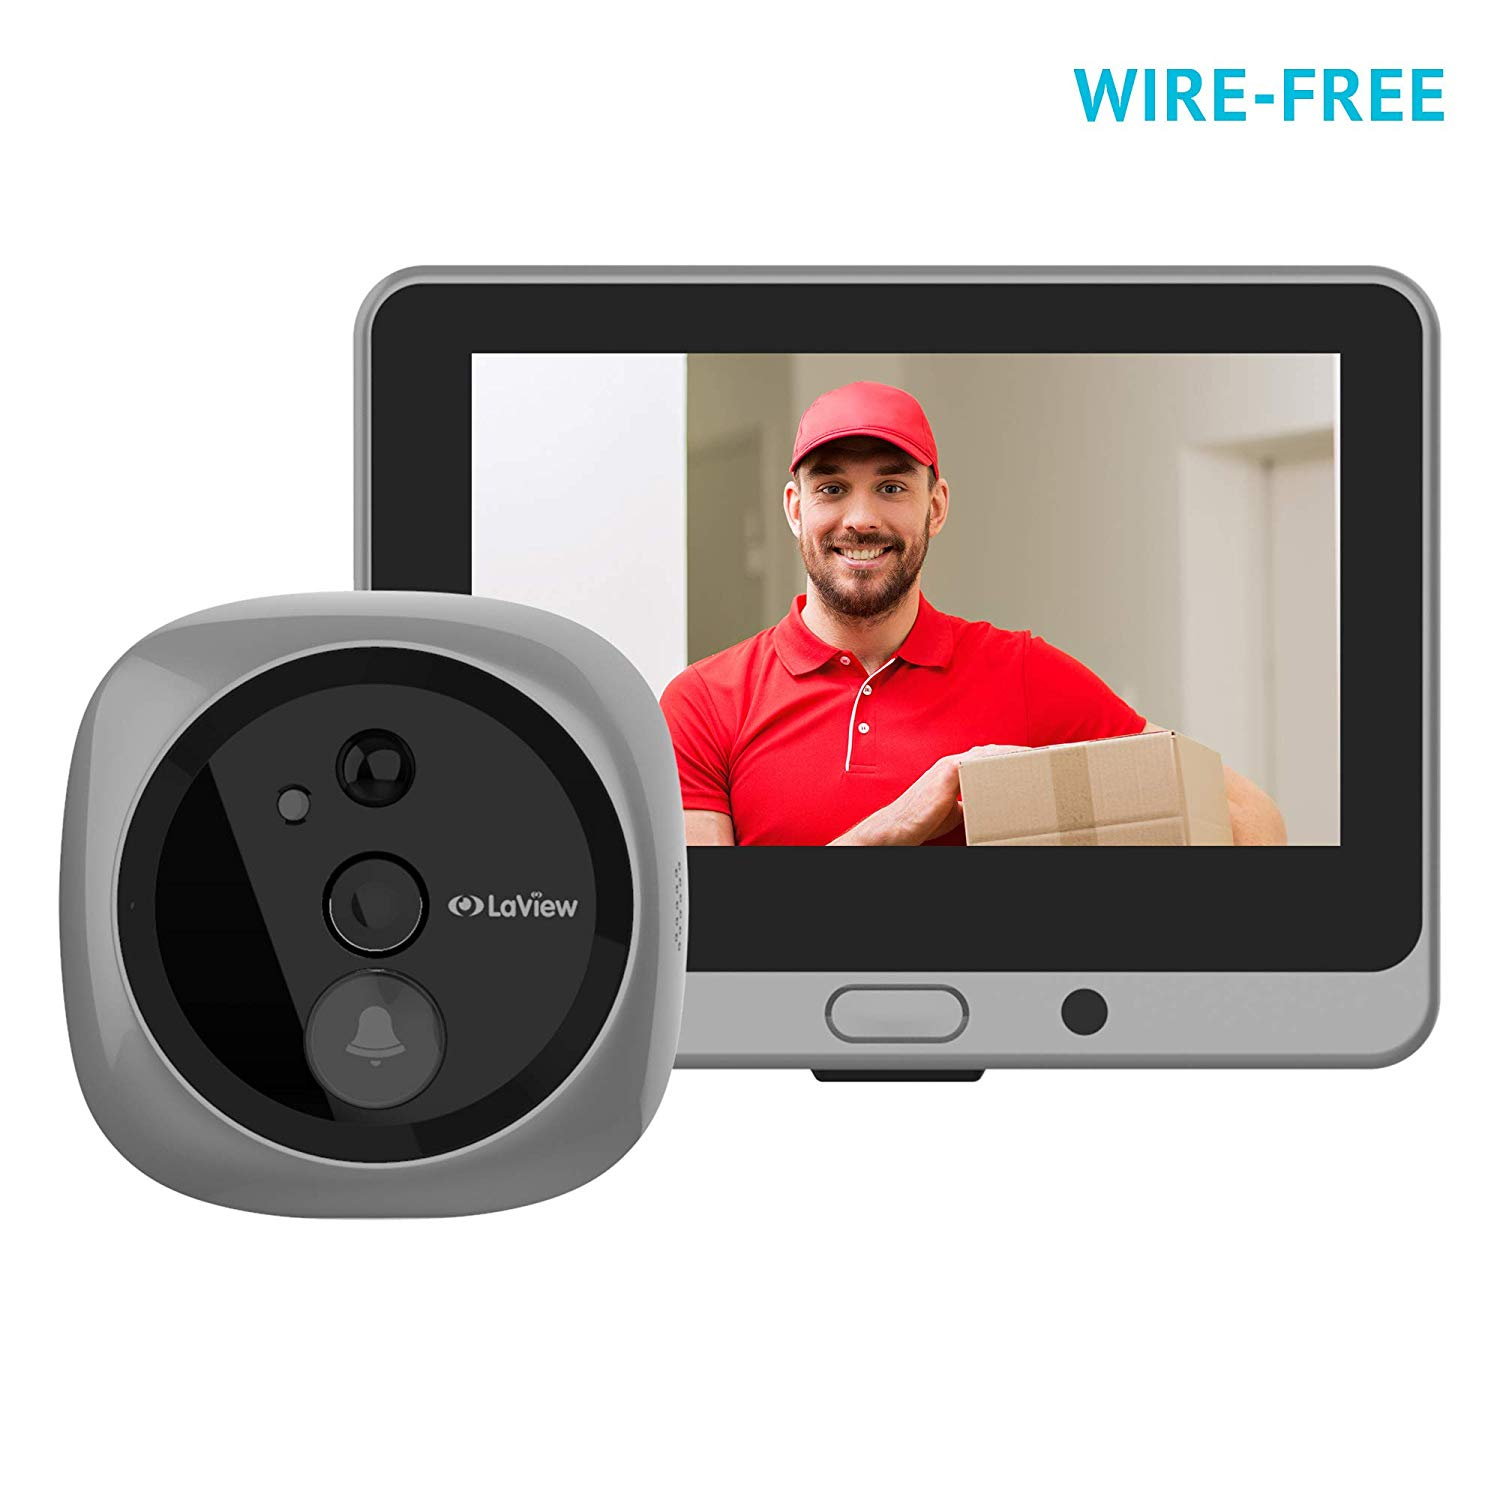 LaView Wireless Video Doorbell, Wi-Fi Door Bell Camera, Peephole Camera with LED Touch Screen, Wide Angle/Wire-Free/Rechargeable Battery/Night Vision/Two-Way Audio/Mobile View/16GB SD Card